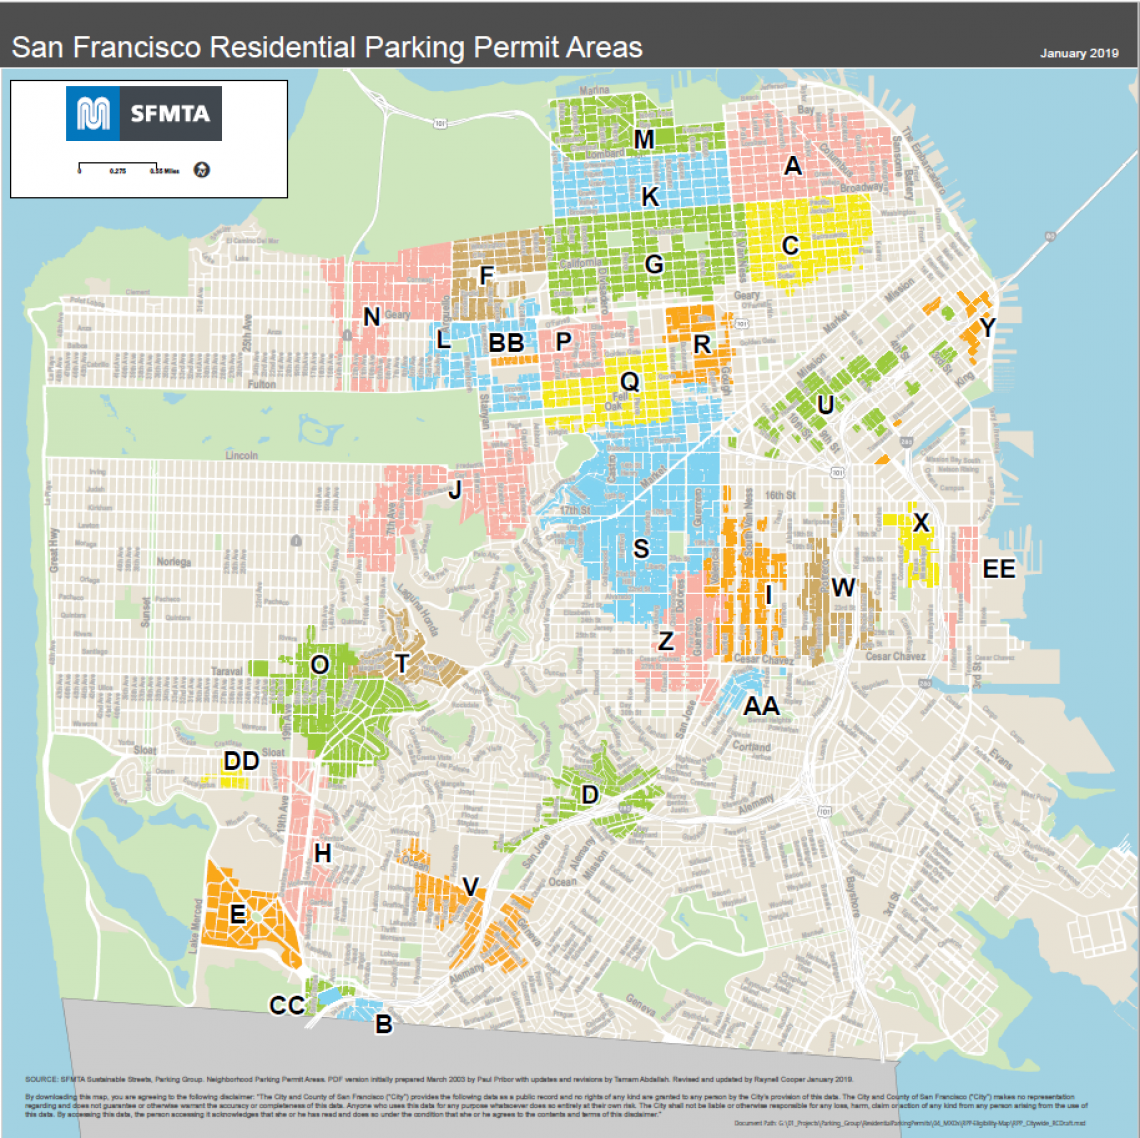 rpp citywide jan 2019 - How To Get A Parking Permit For My Street